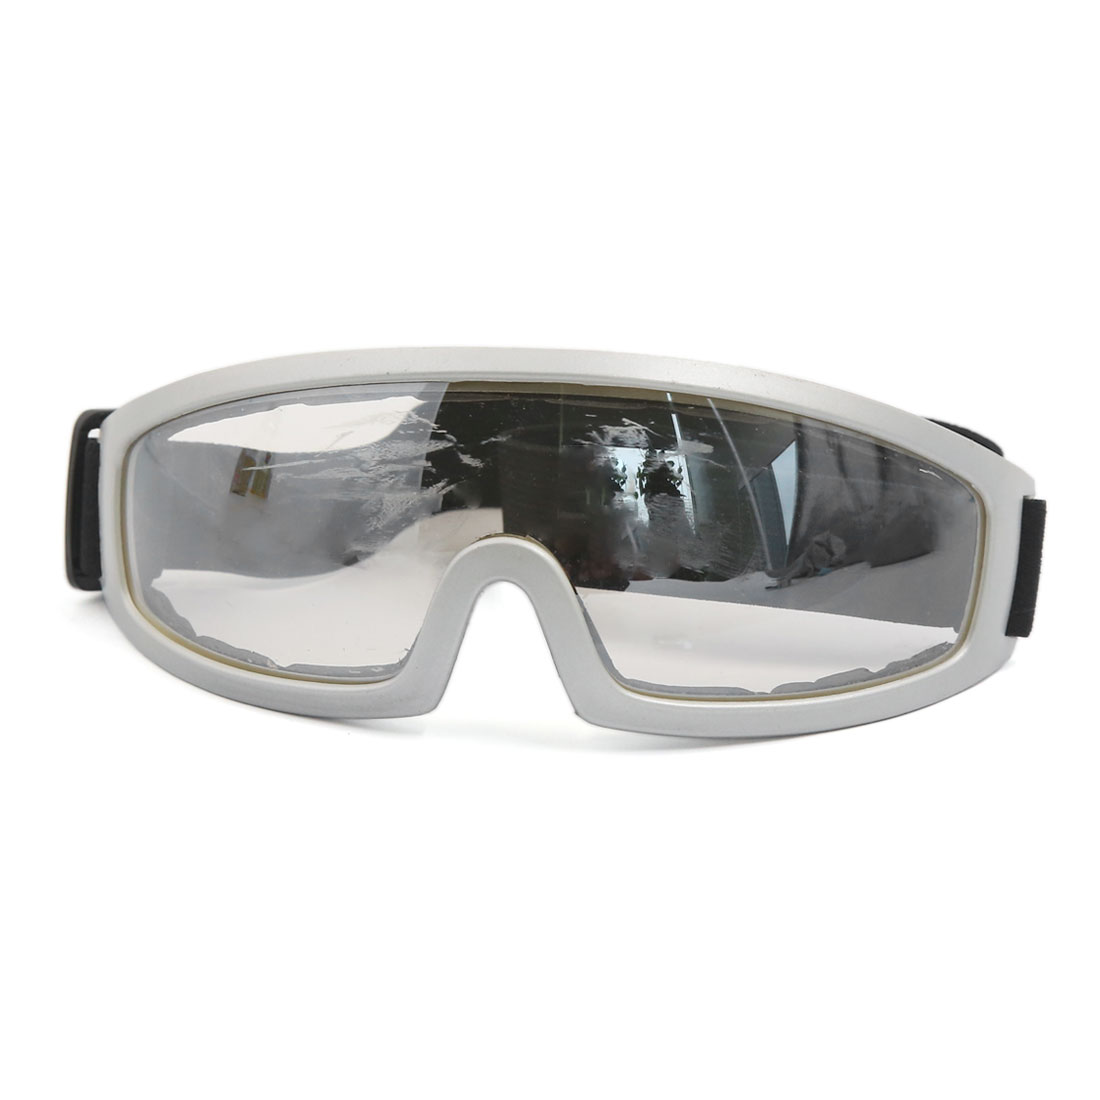 ATV Bikes Motorcycle Cycling Dustproof Goggles Eyewear Sports Glasses Sunglasses